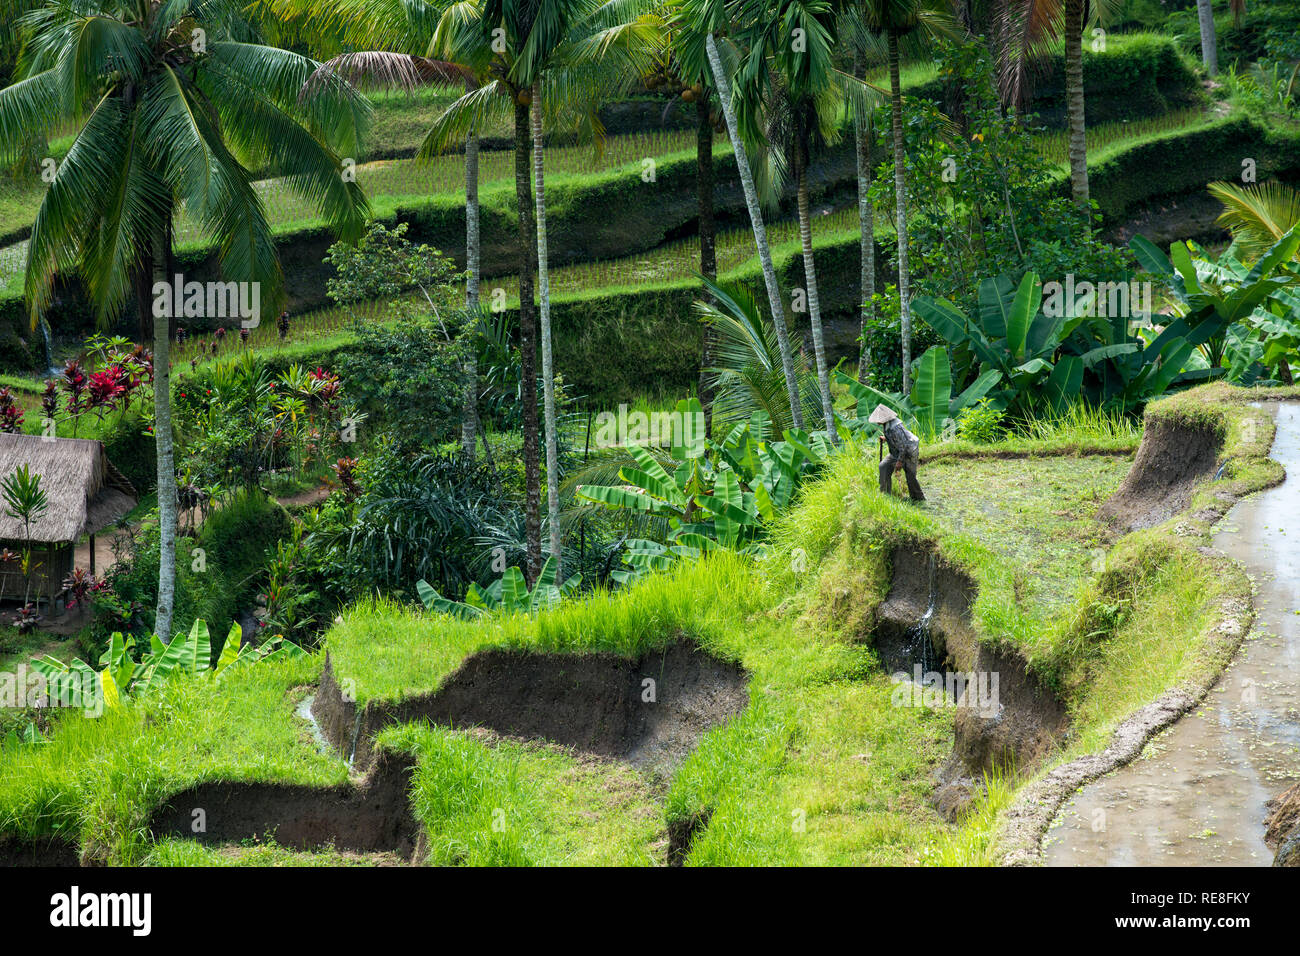 Unrecognizable agricultural worker climbing among Balinese rice terraces at Tegallalang near Ubud - Stock Image